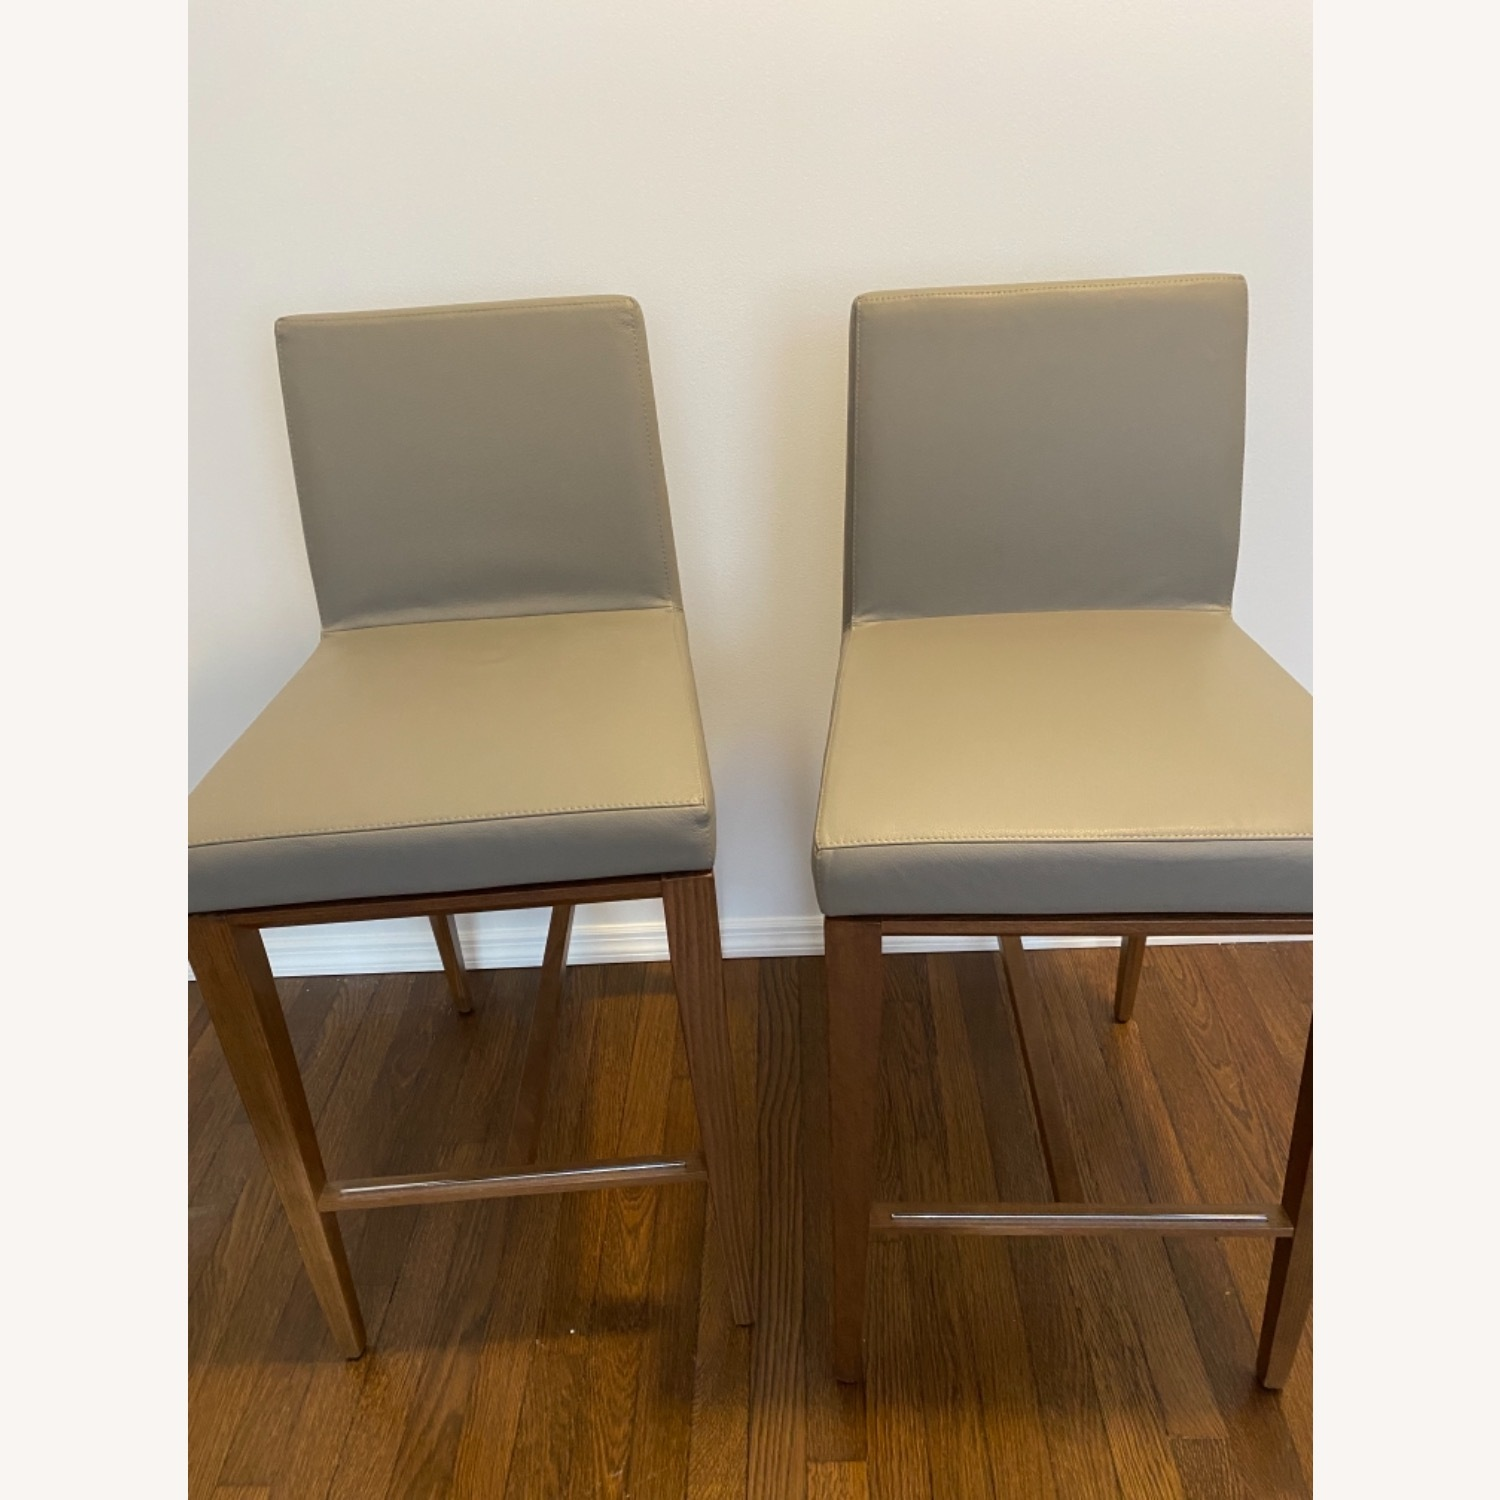 Calligaris Bess Barstools -Taupe Leather - image-1